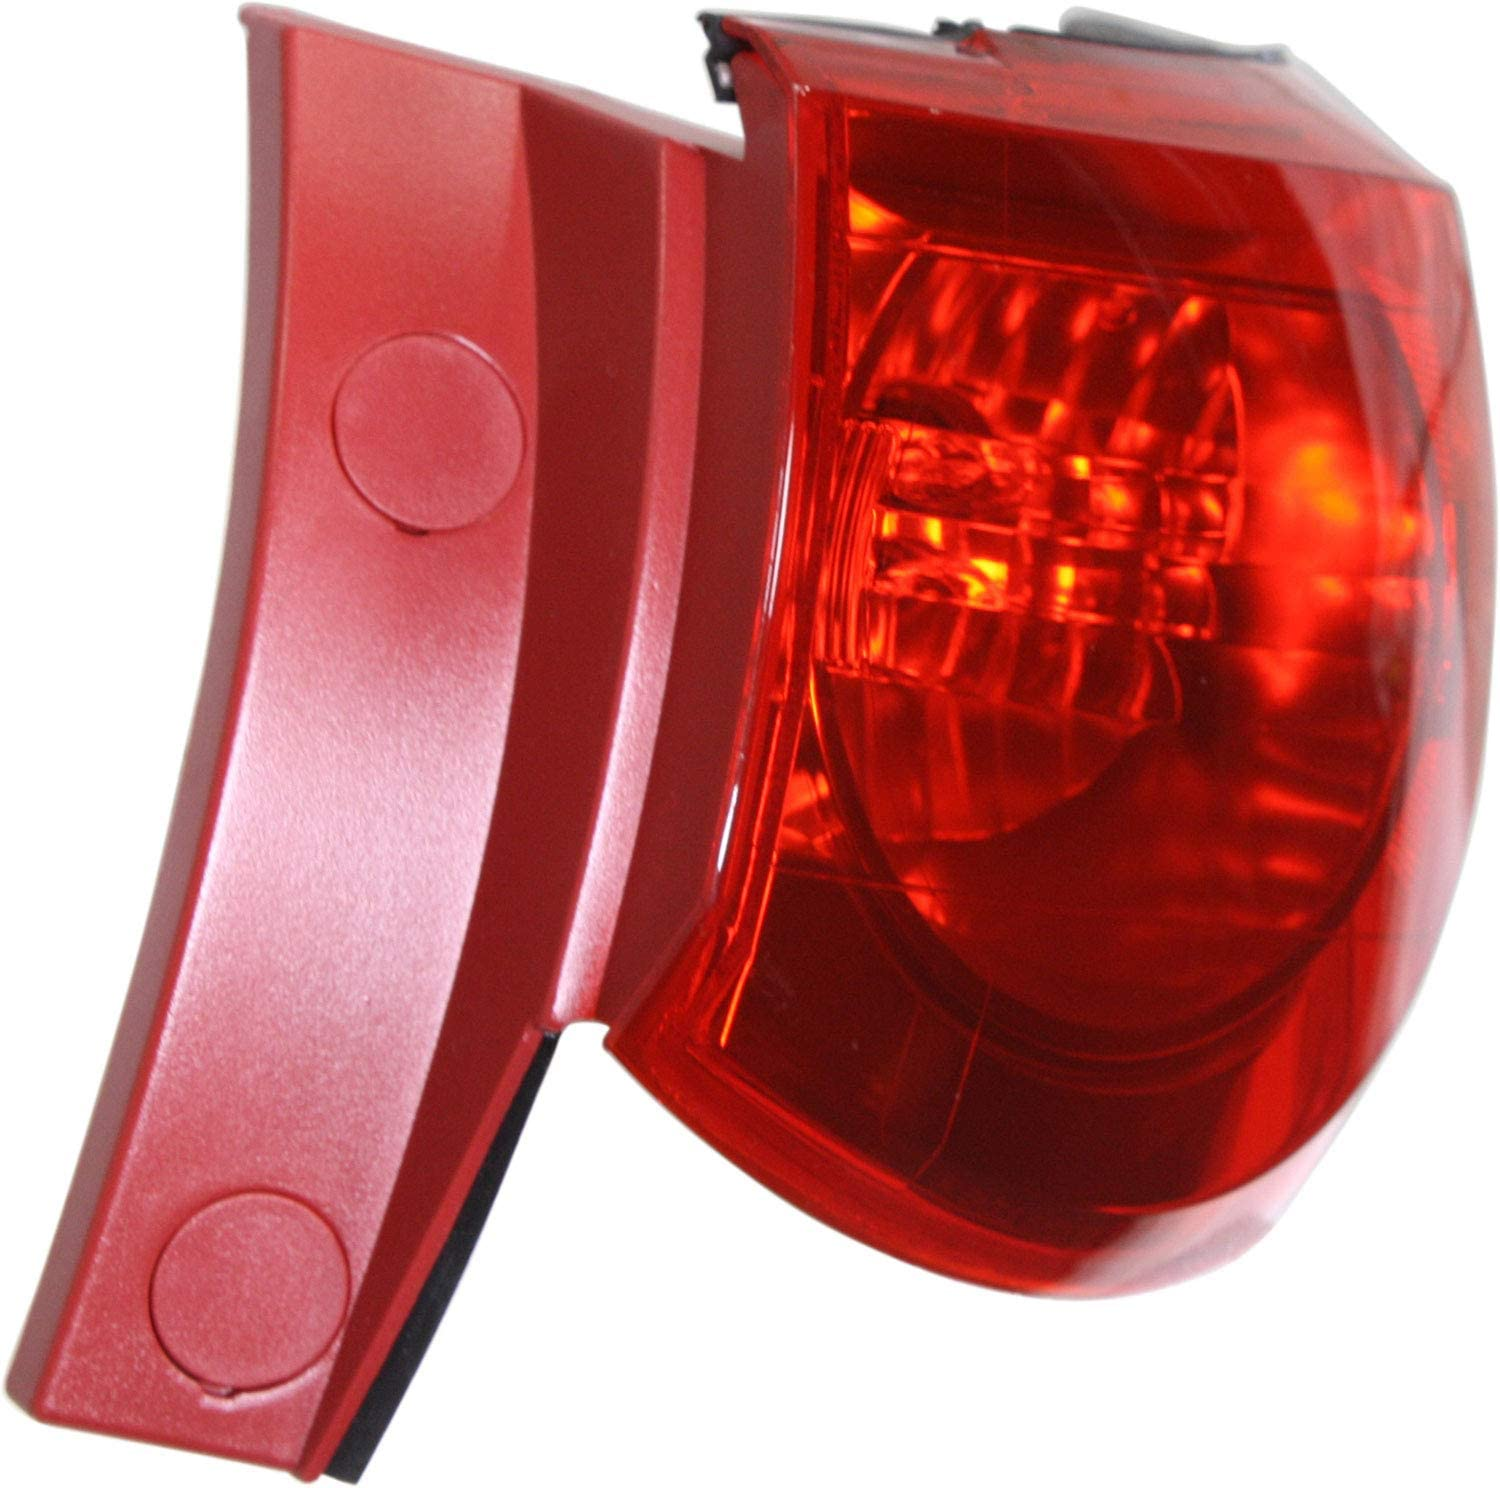 Tail Light Assembly Compatible with 2009-2012 Chevrolet Traverse Outer Red Lens Passenger Side